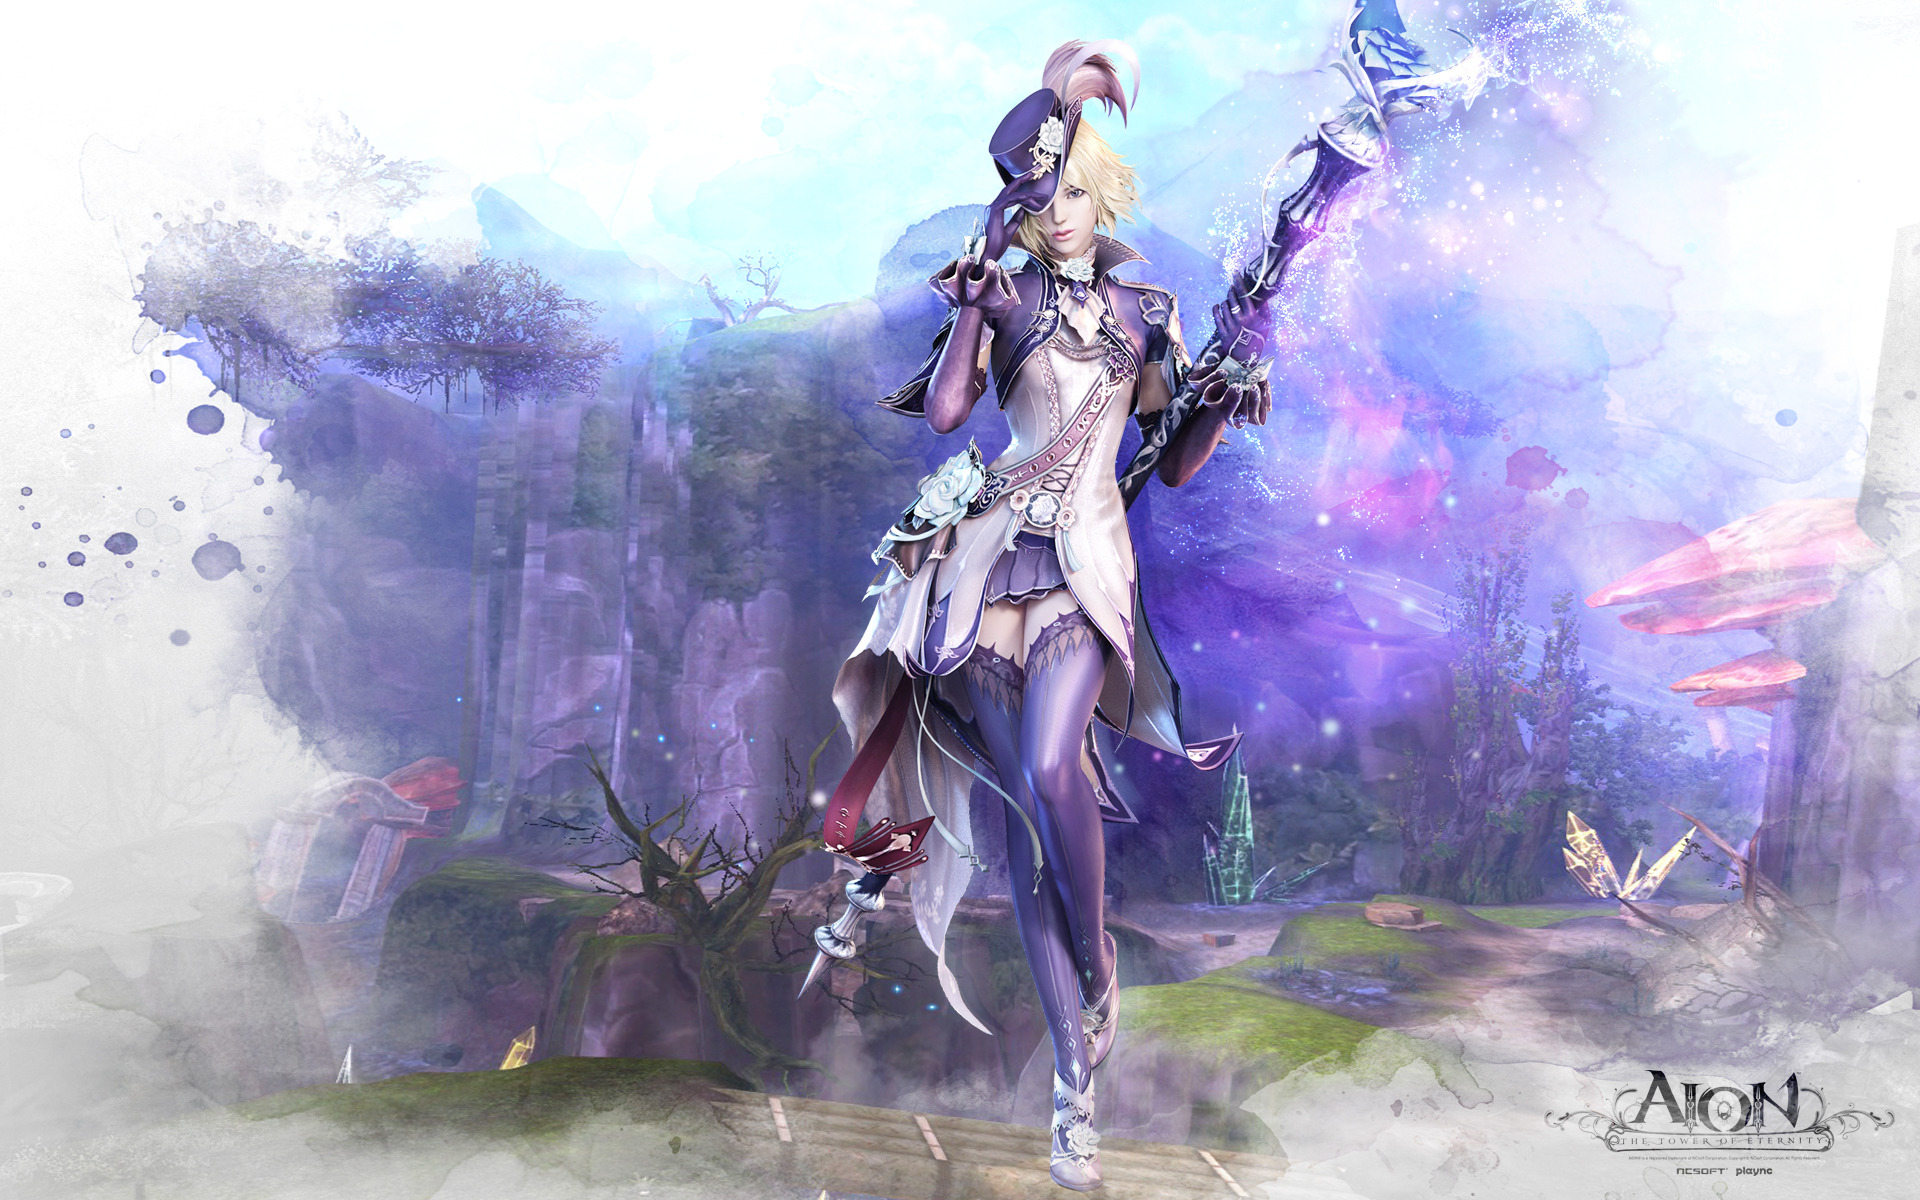 Aion: The Tower of Eternity (The Tower Of Aion) Image #1629396 ...